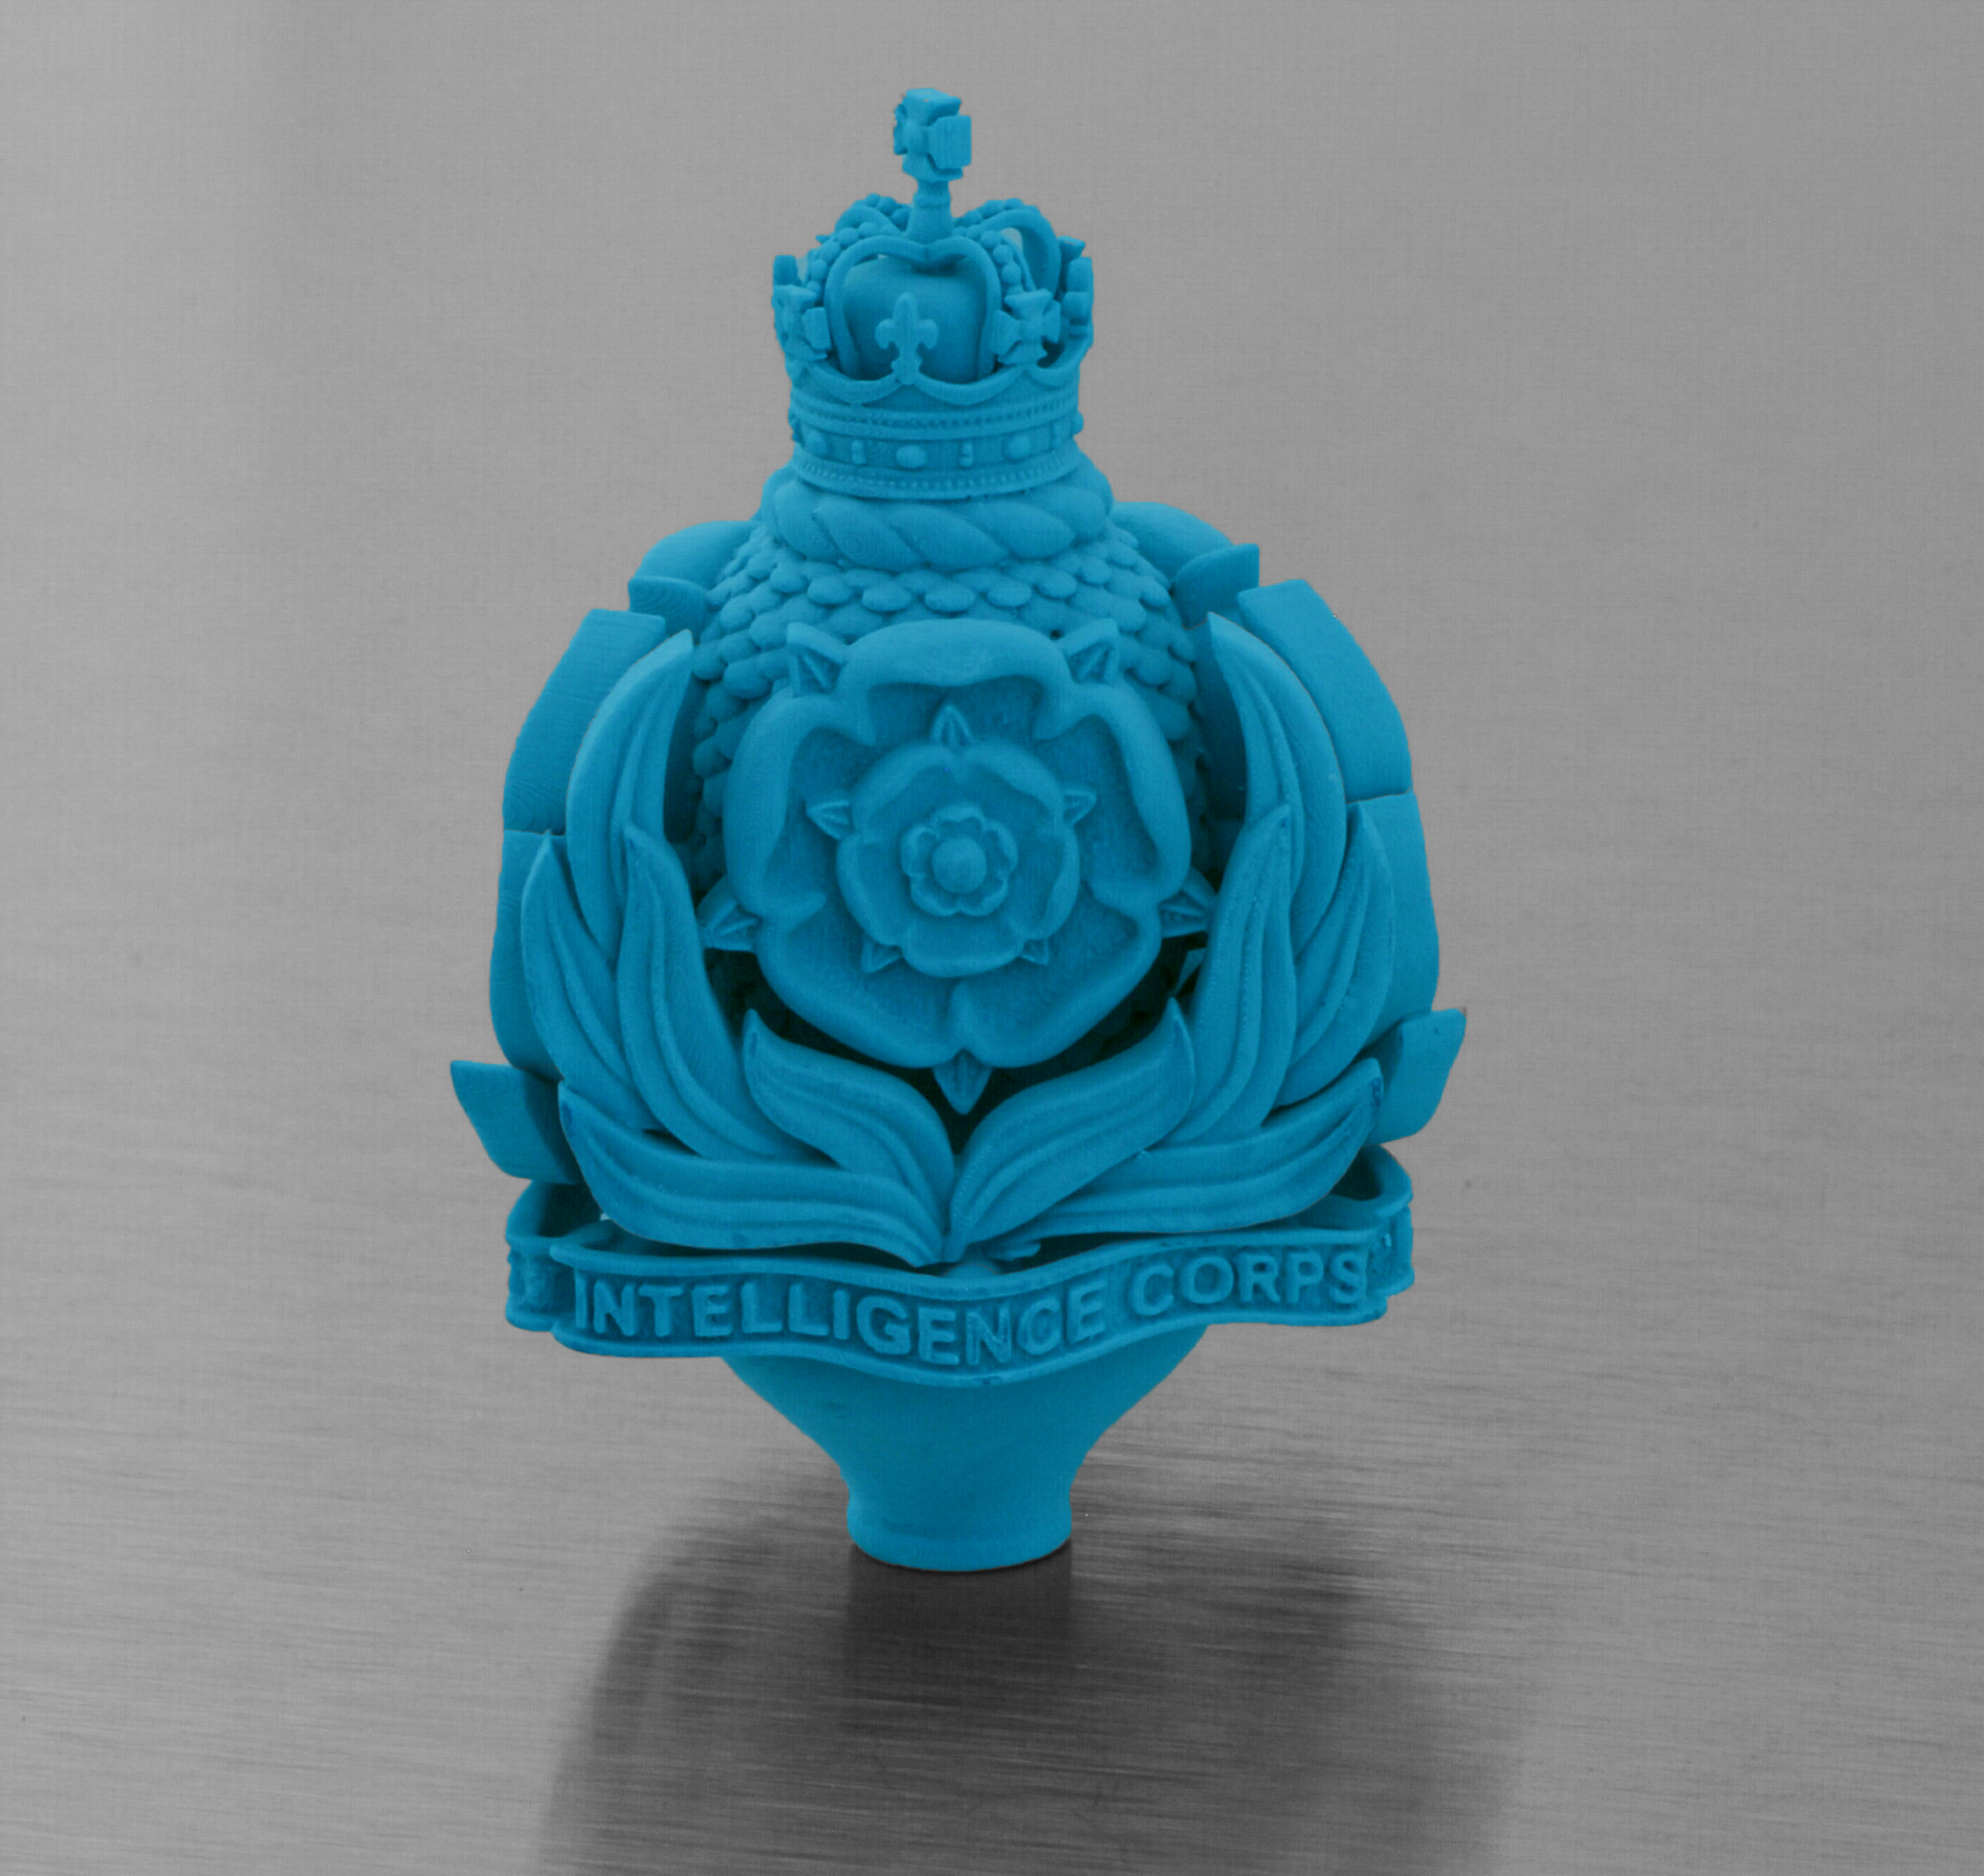 A finial for the Intelligence Corps, later cast into Silver.